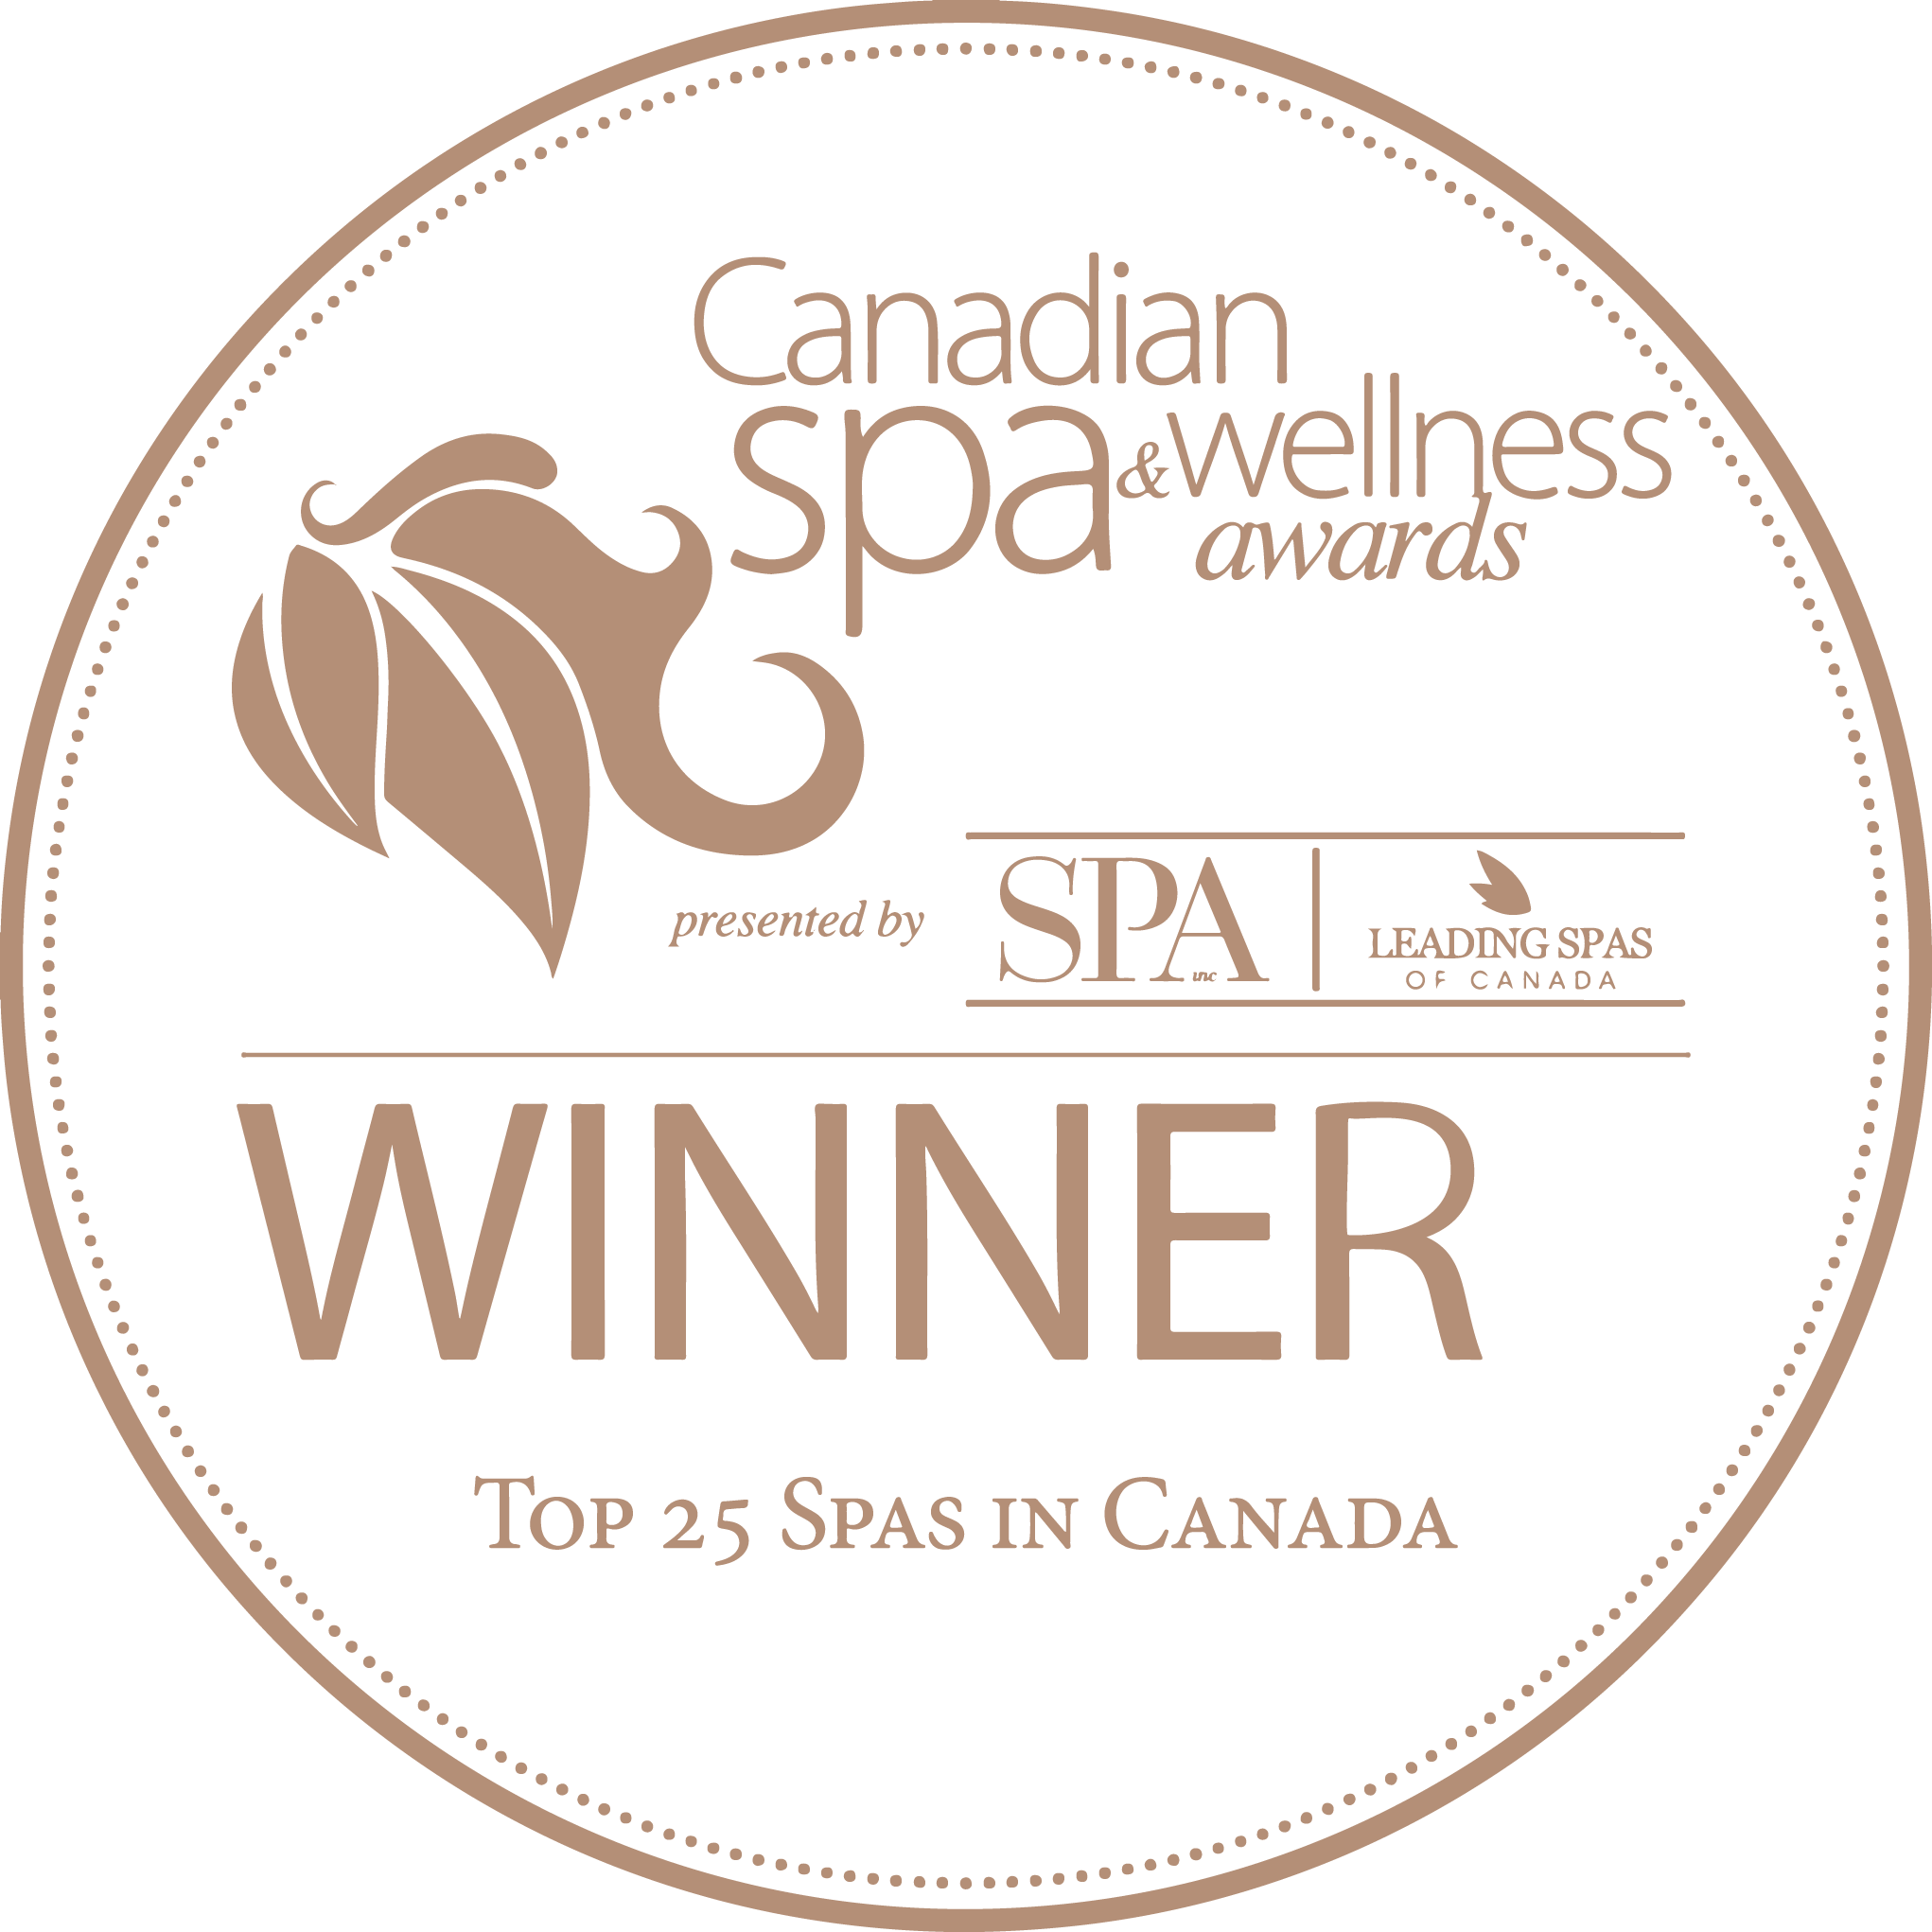 Canadian Spa & Wellness Awards Winner - Top 25 Spas in Canada